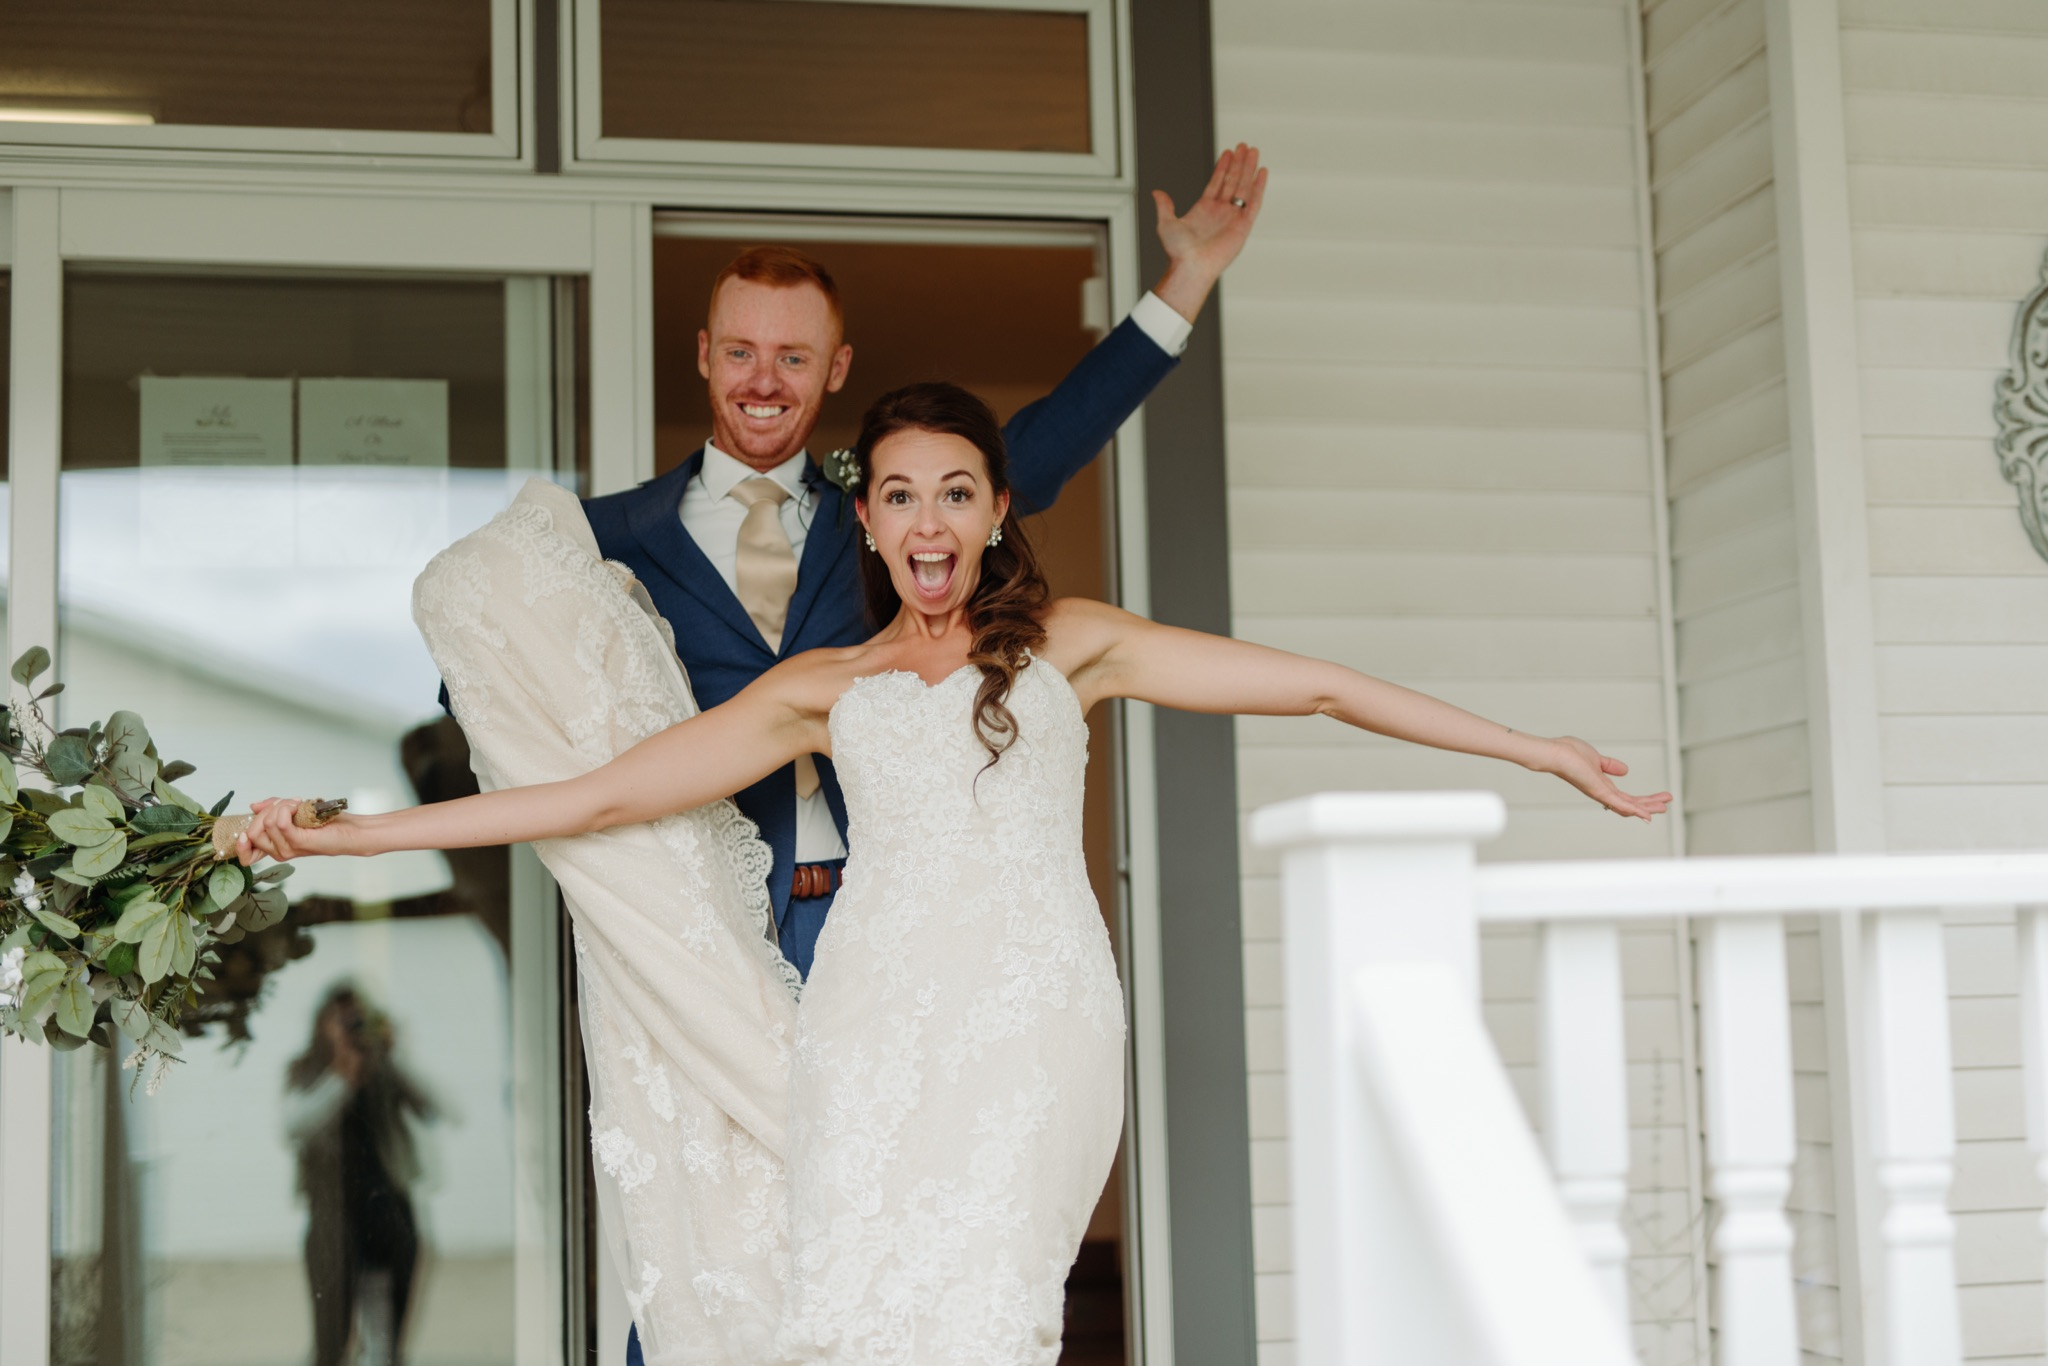 bride and groom smiling with arms open